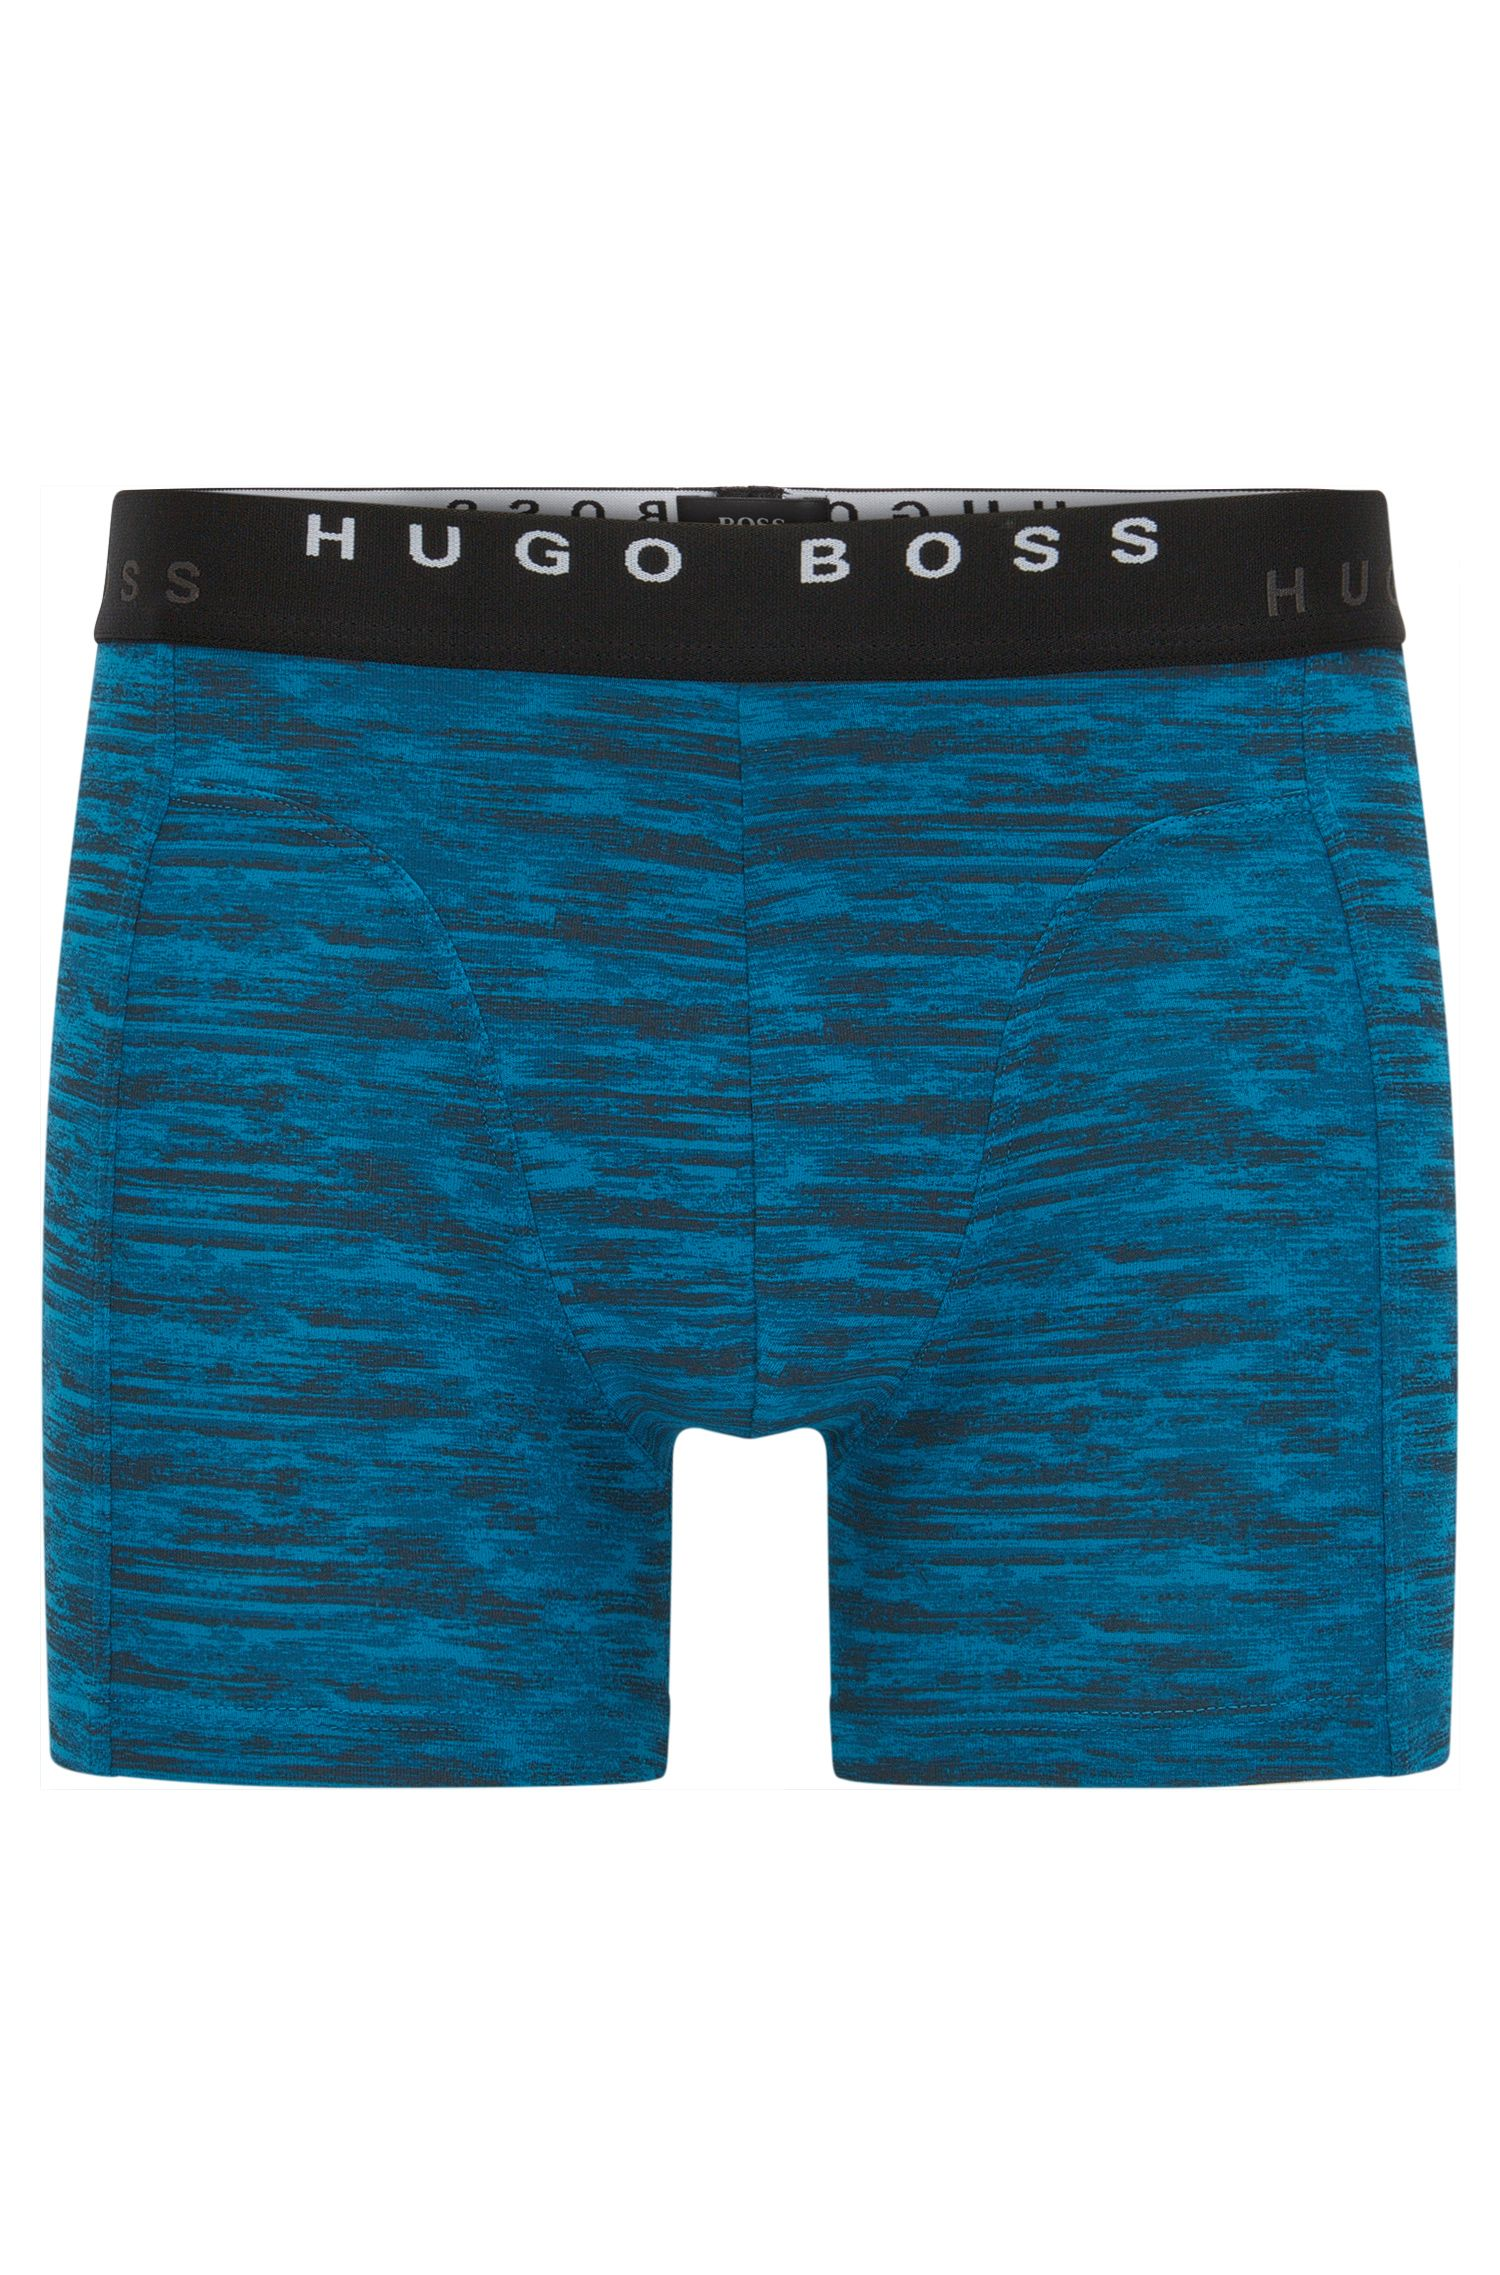 Two-pack of boxer shorts in cotton